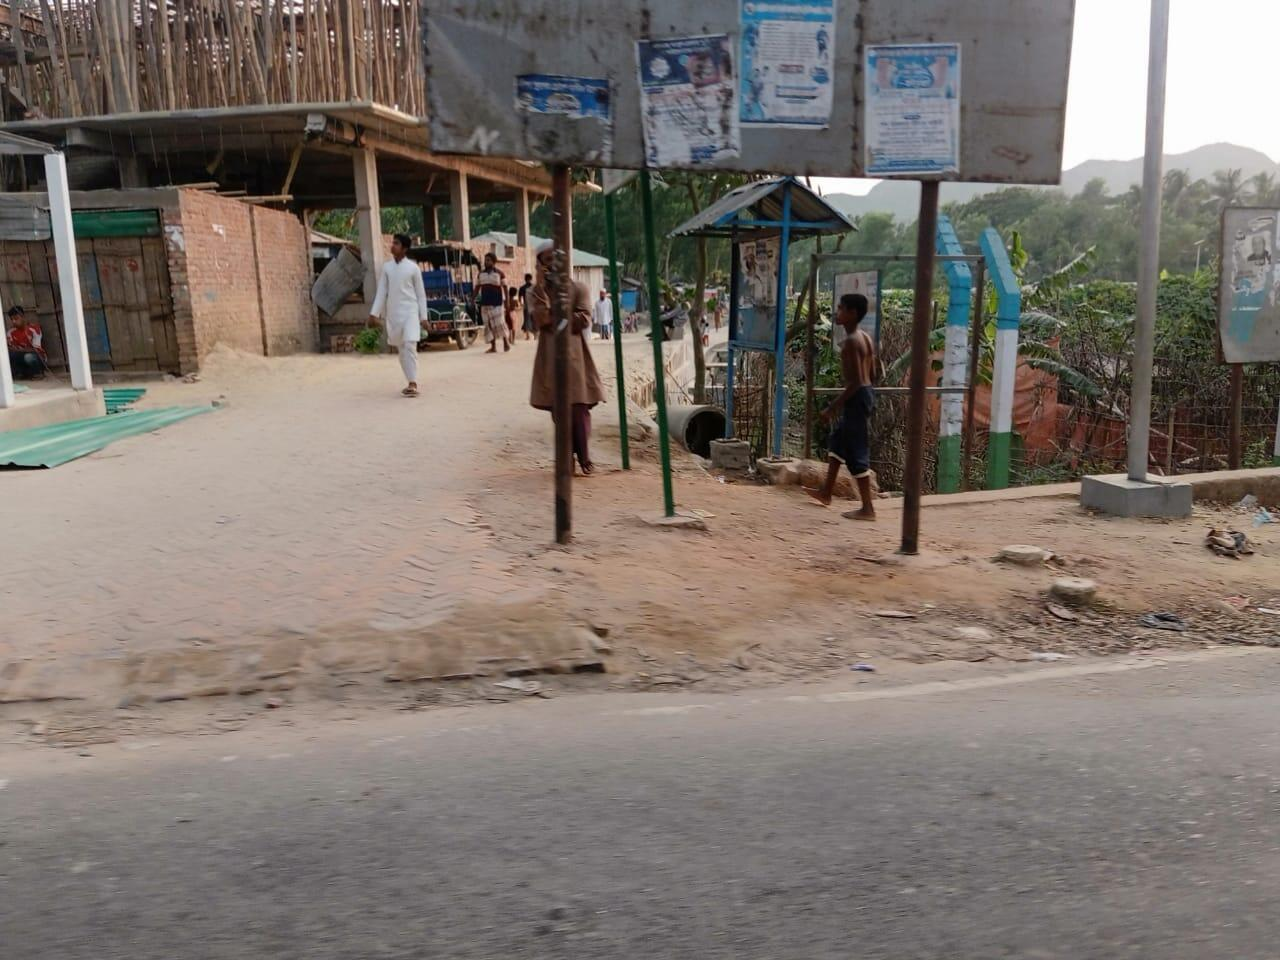 The entrance to Jadimura Camp 27 in Cox's Bazar, fenced with barbed wire. Photo taken April 30, 2021.